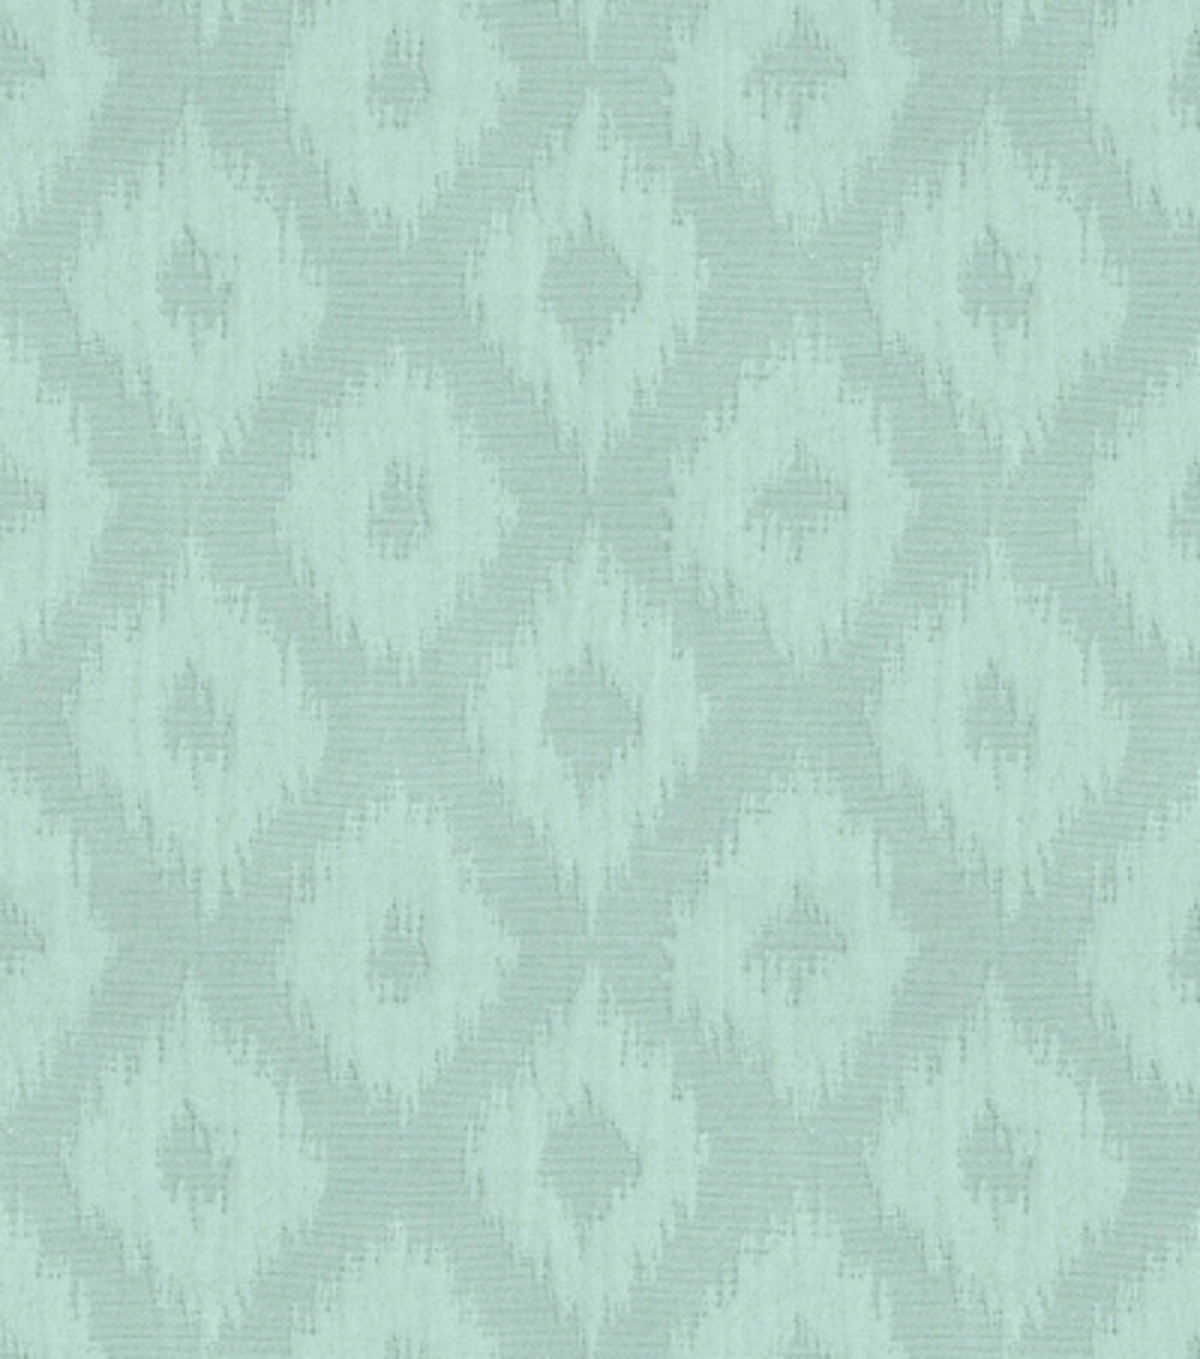 Home Decor 8\u0022x8\u0022 Fabric Swatch-Dena Avan Sky